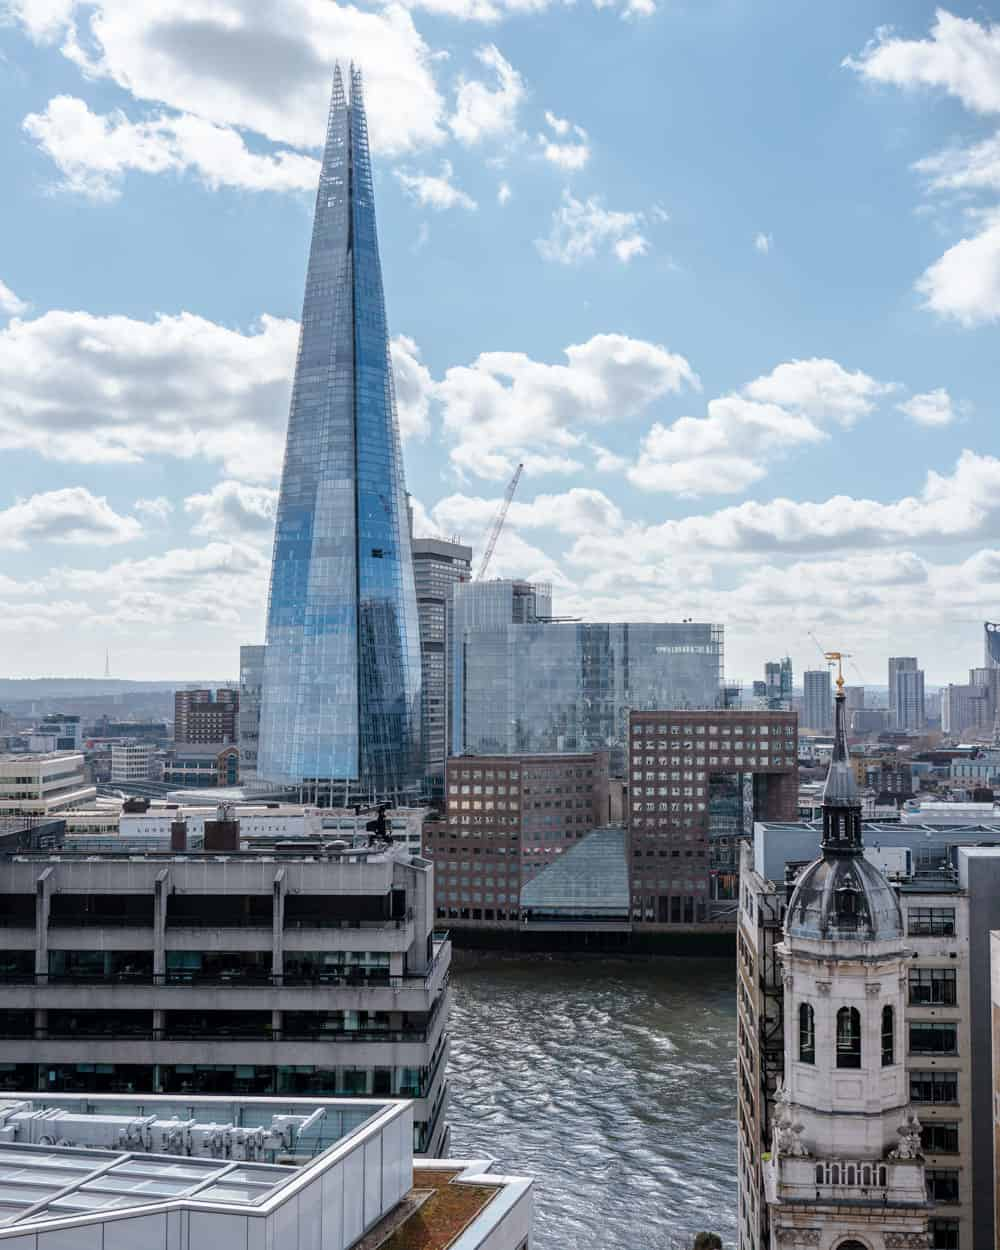 The Shard is London's tallest skyscraper and a prominent landmark on the city's skyline.